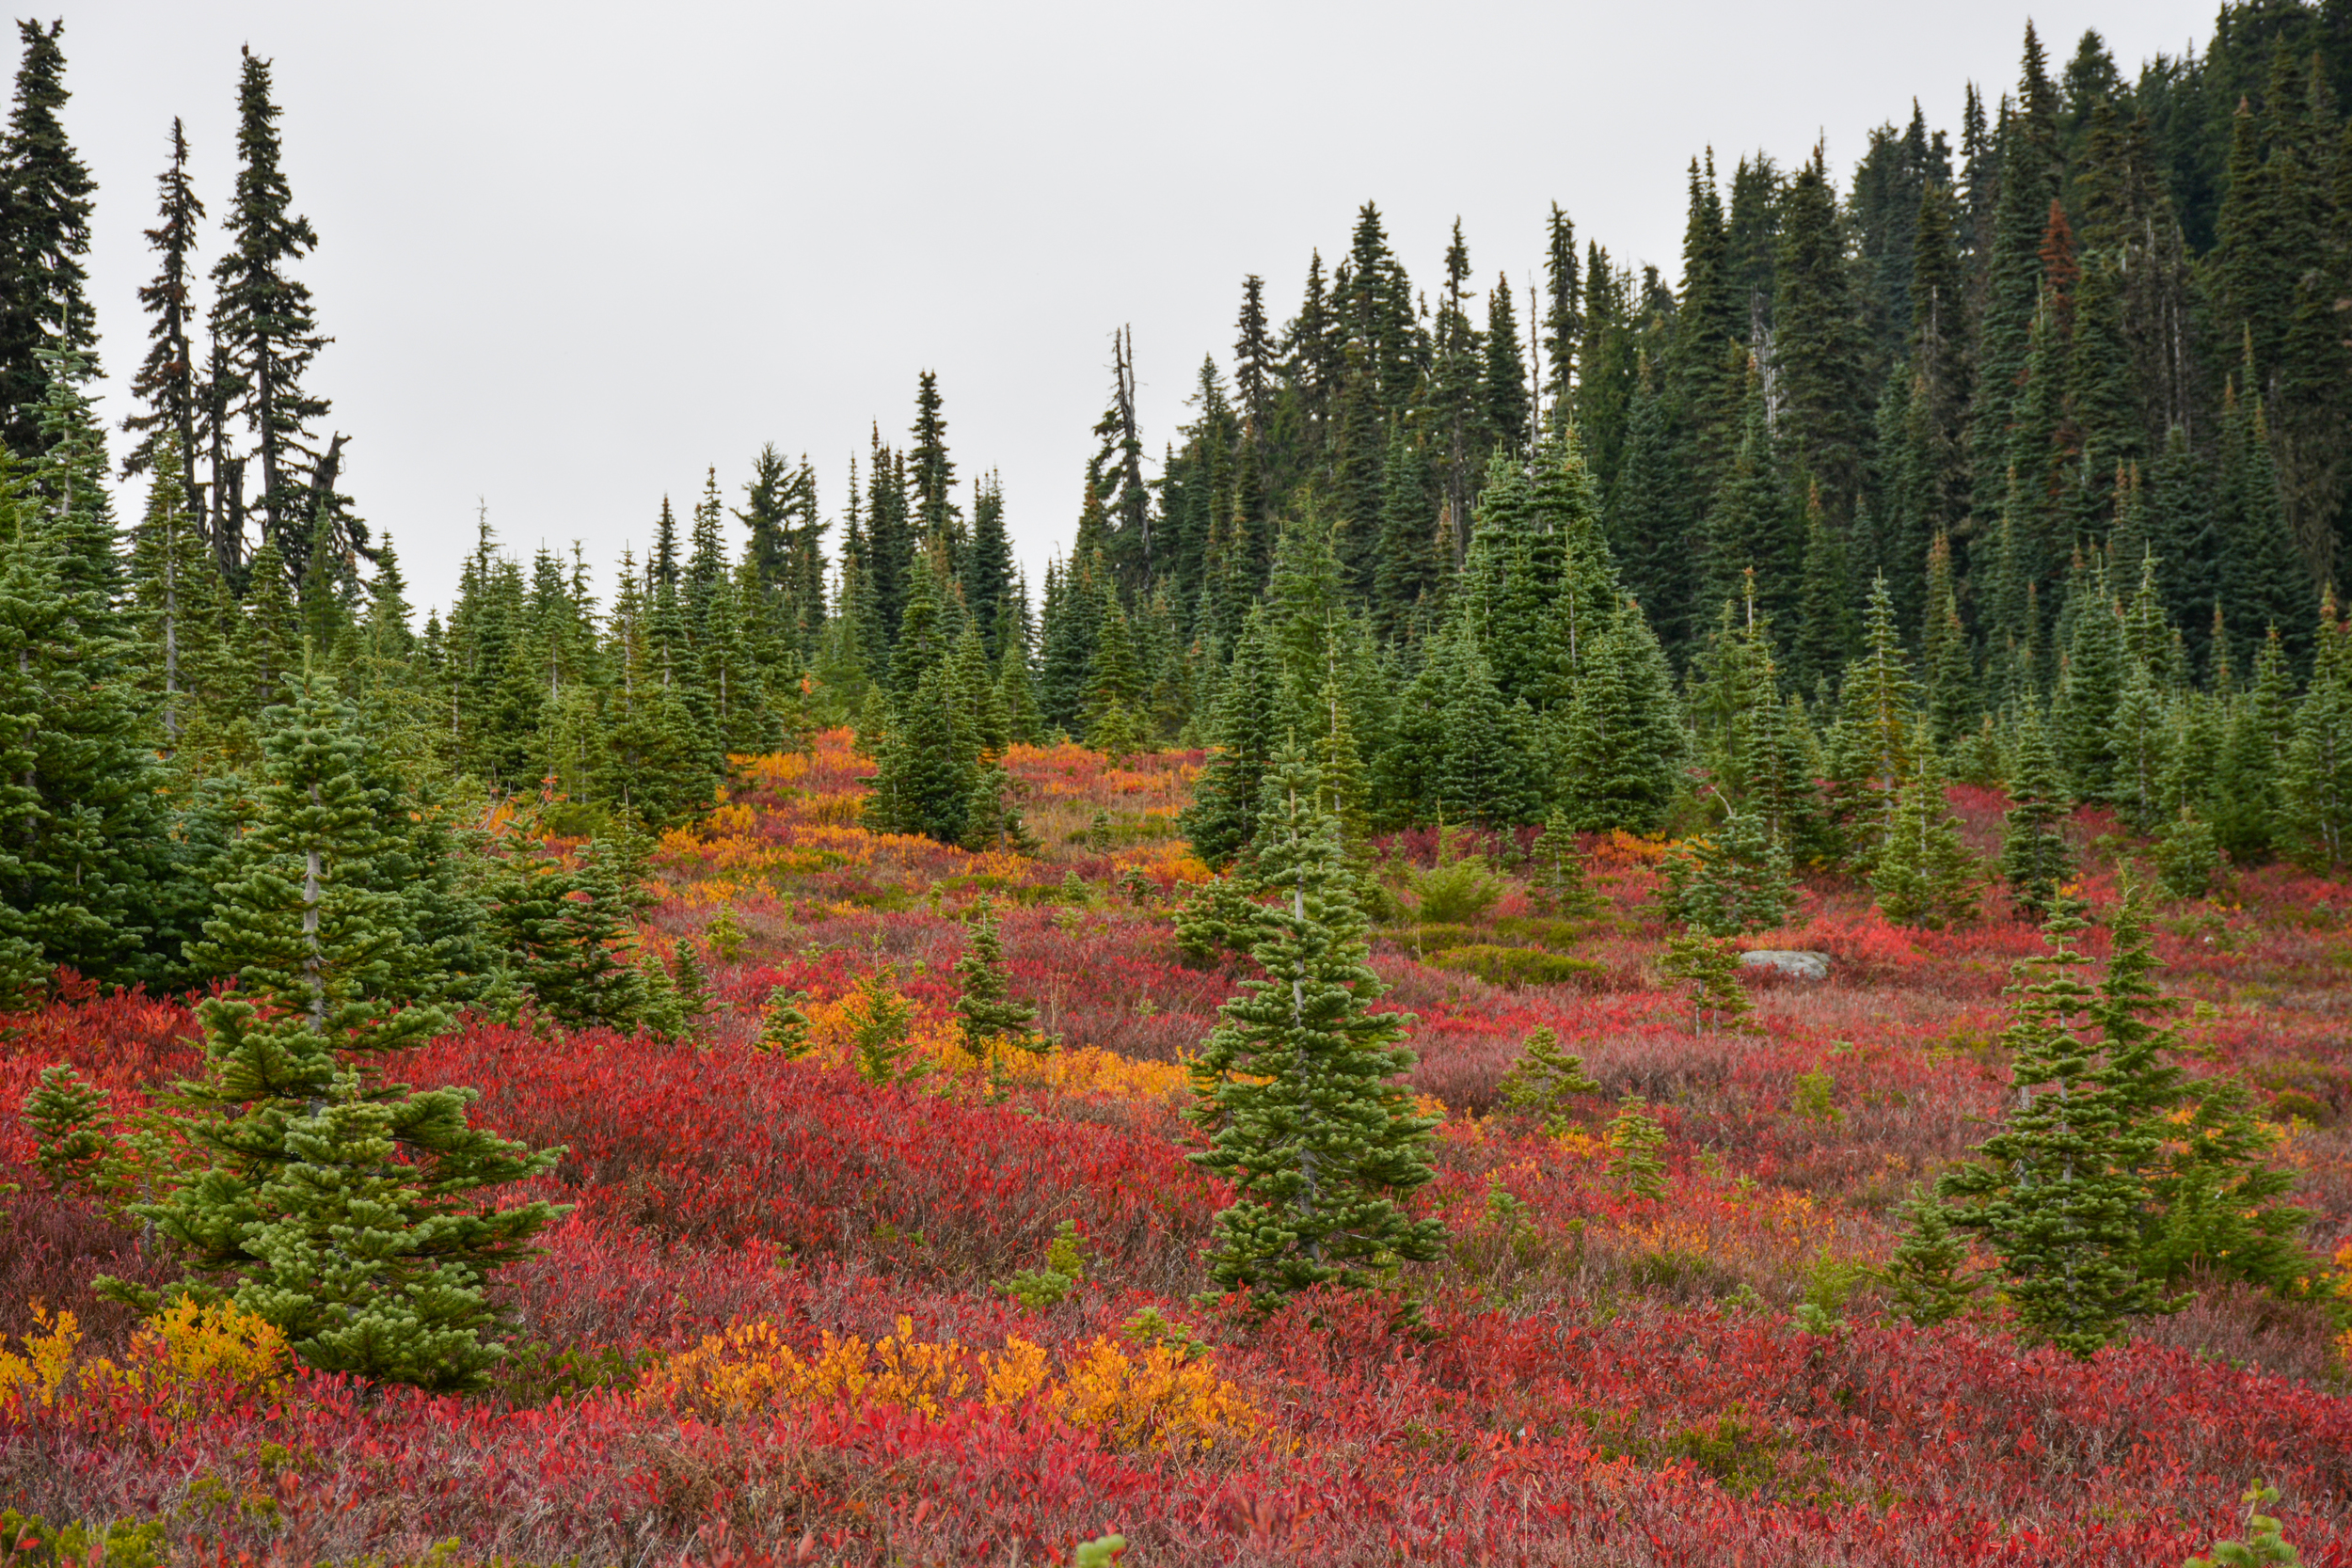 Evergreens contrasting with the fall foliage at Mount Rainier National Park